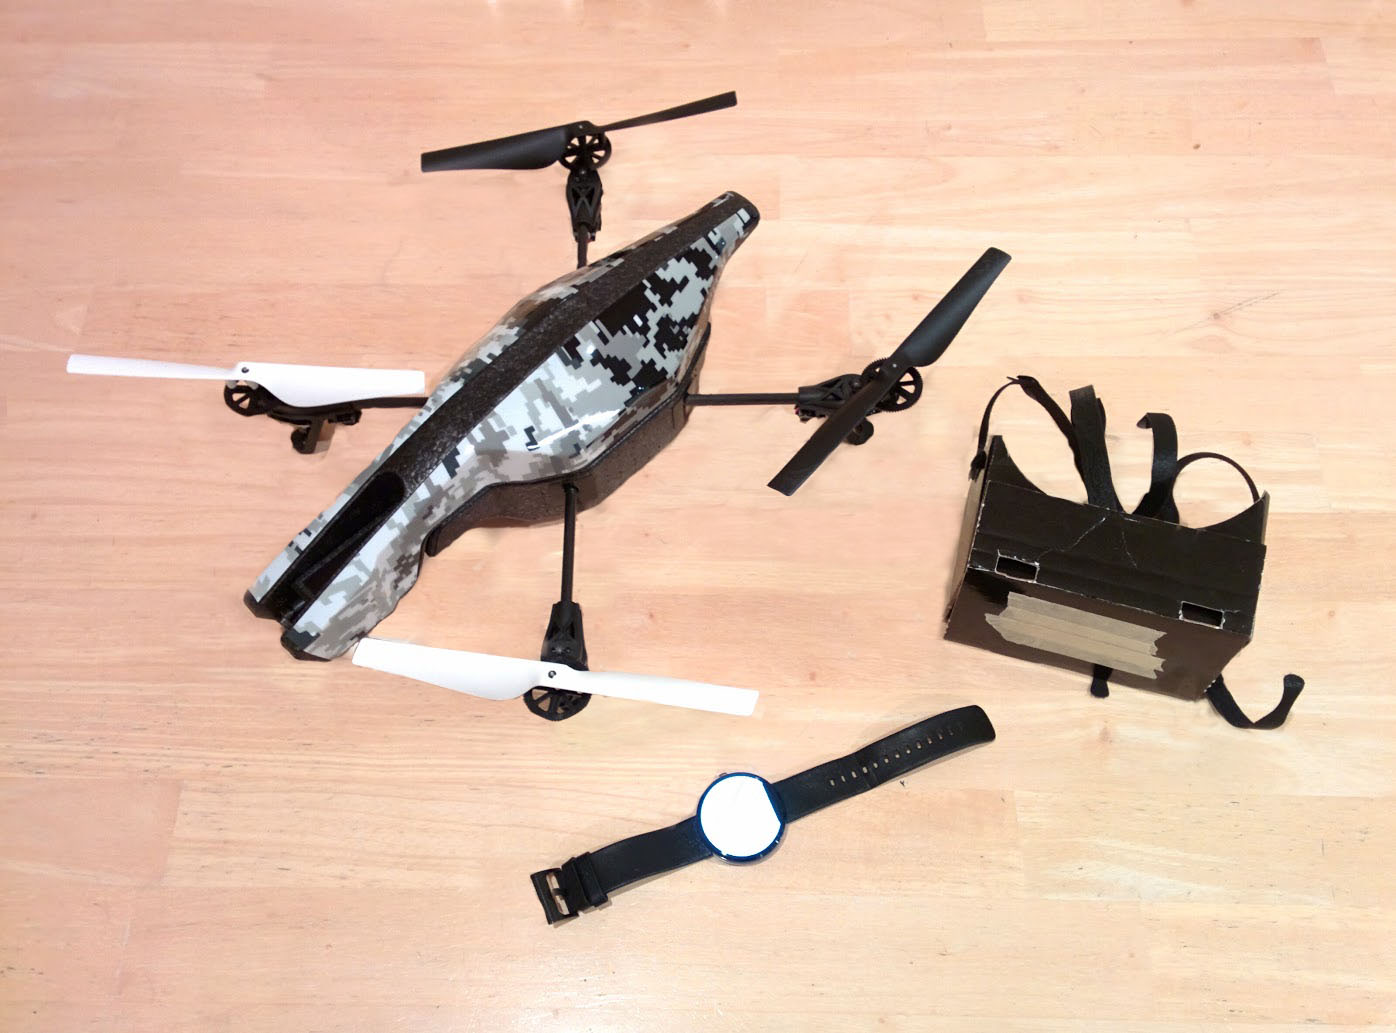 GitHub - SteveJonNunez/FPVDrone: First Person Drone with Android